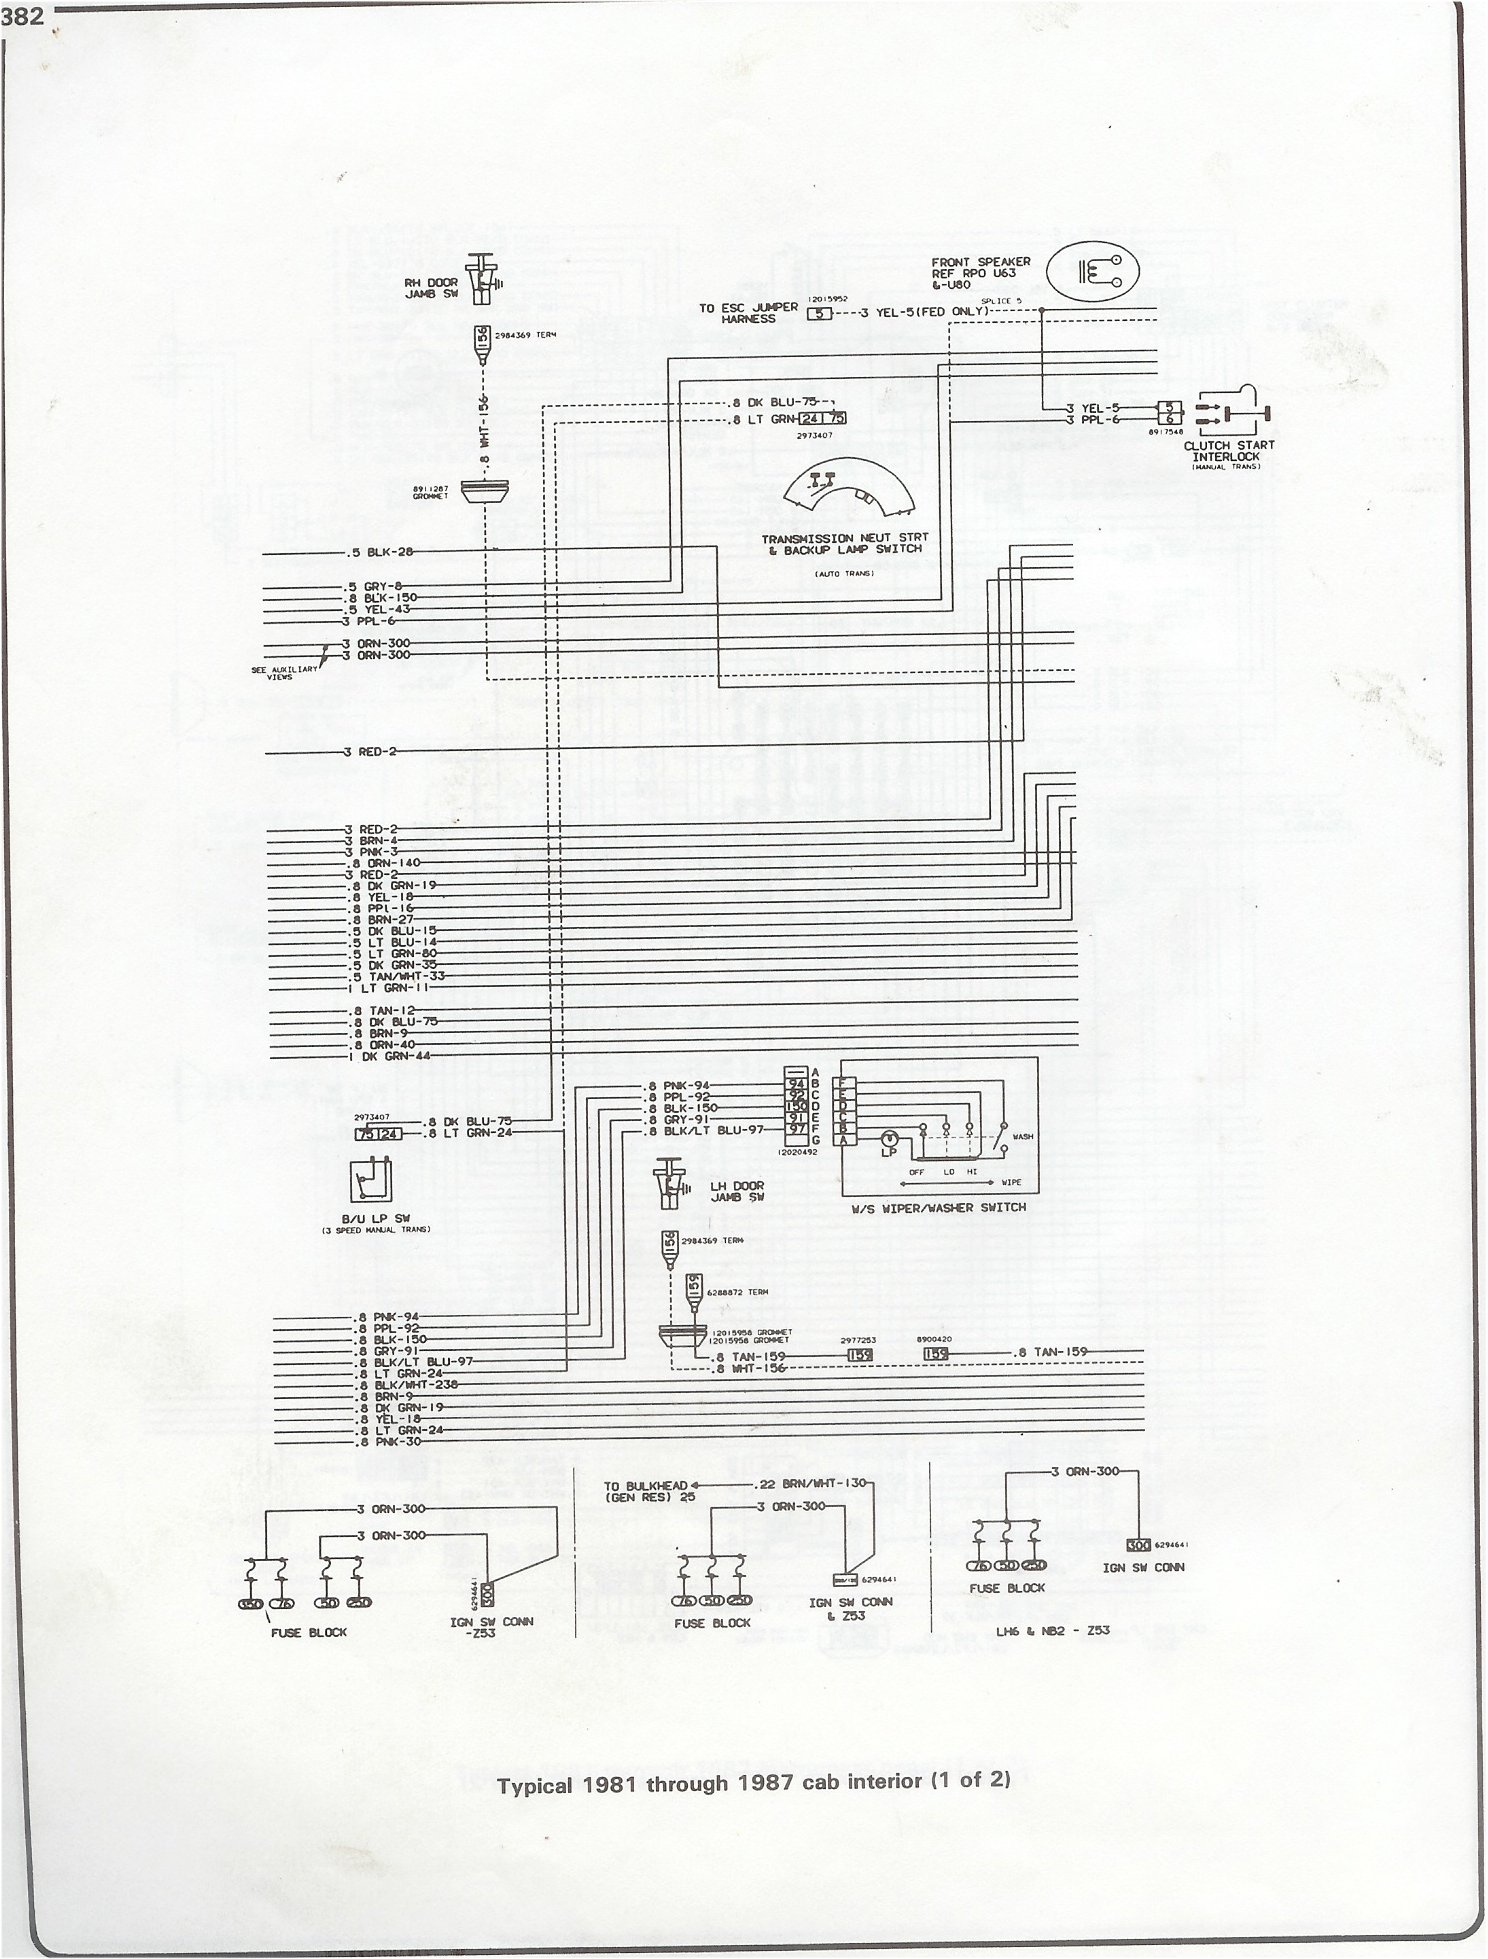 Complete 73 87 Wiring Diagrams V8 Chevy Engine Diagram 1977 81 Compartment Instrument Panel Page 1 2 Computer Control